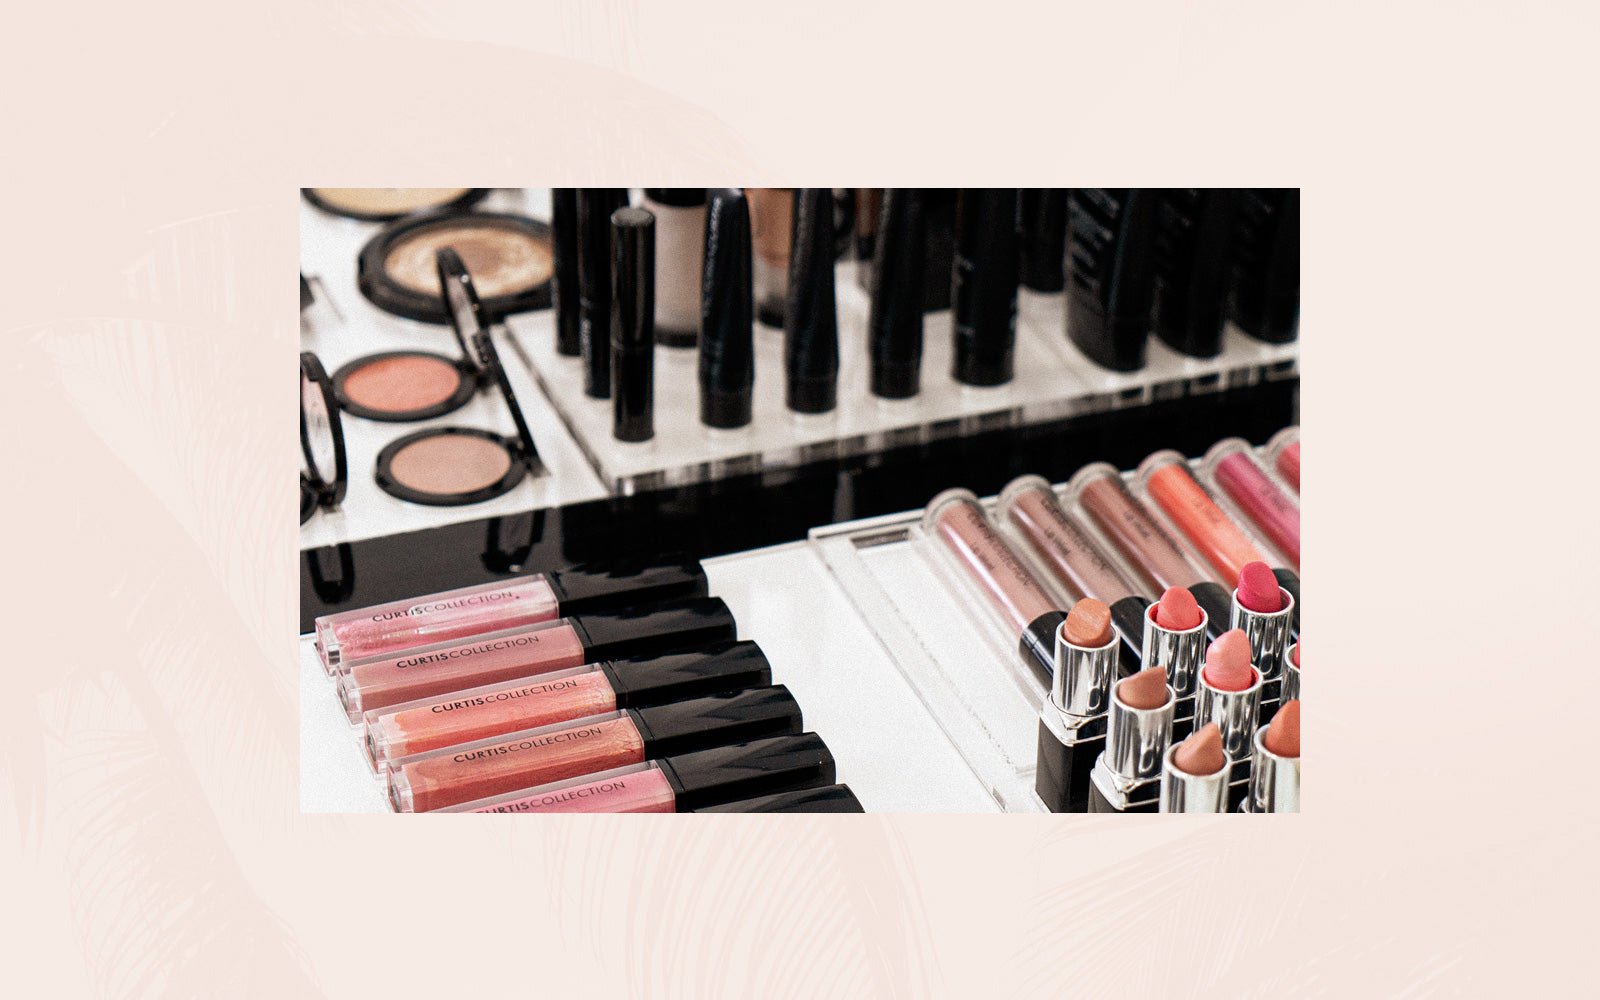 Professional makeup application products